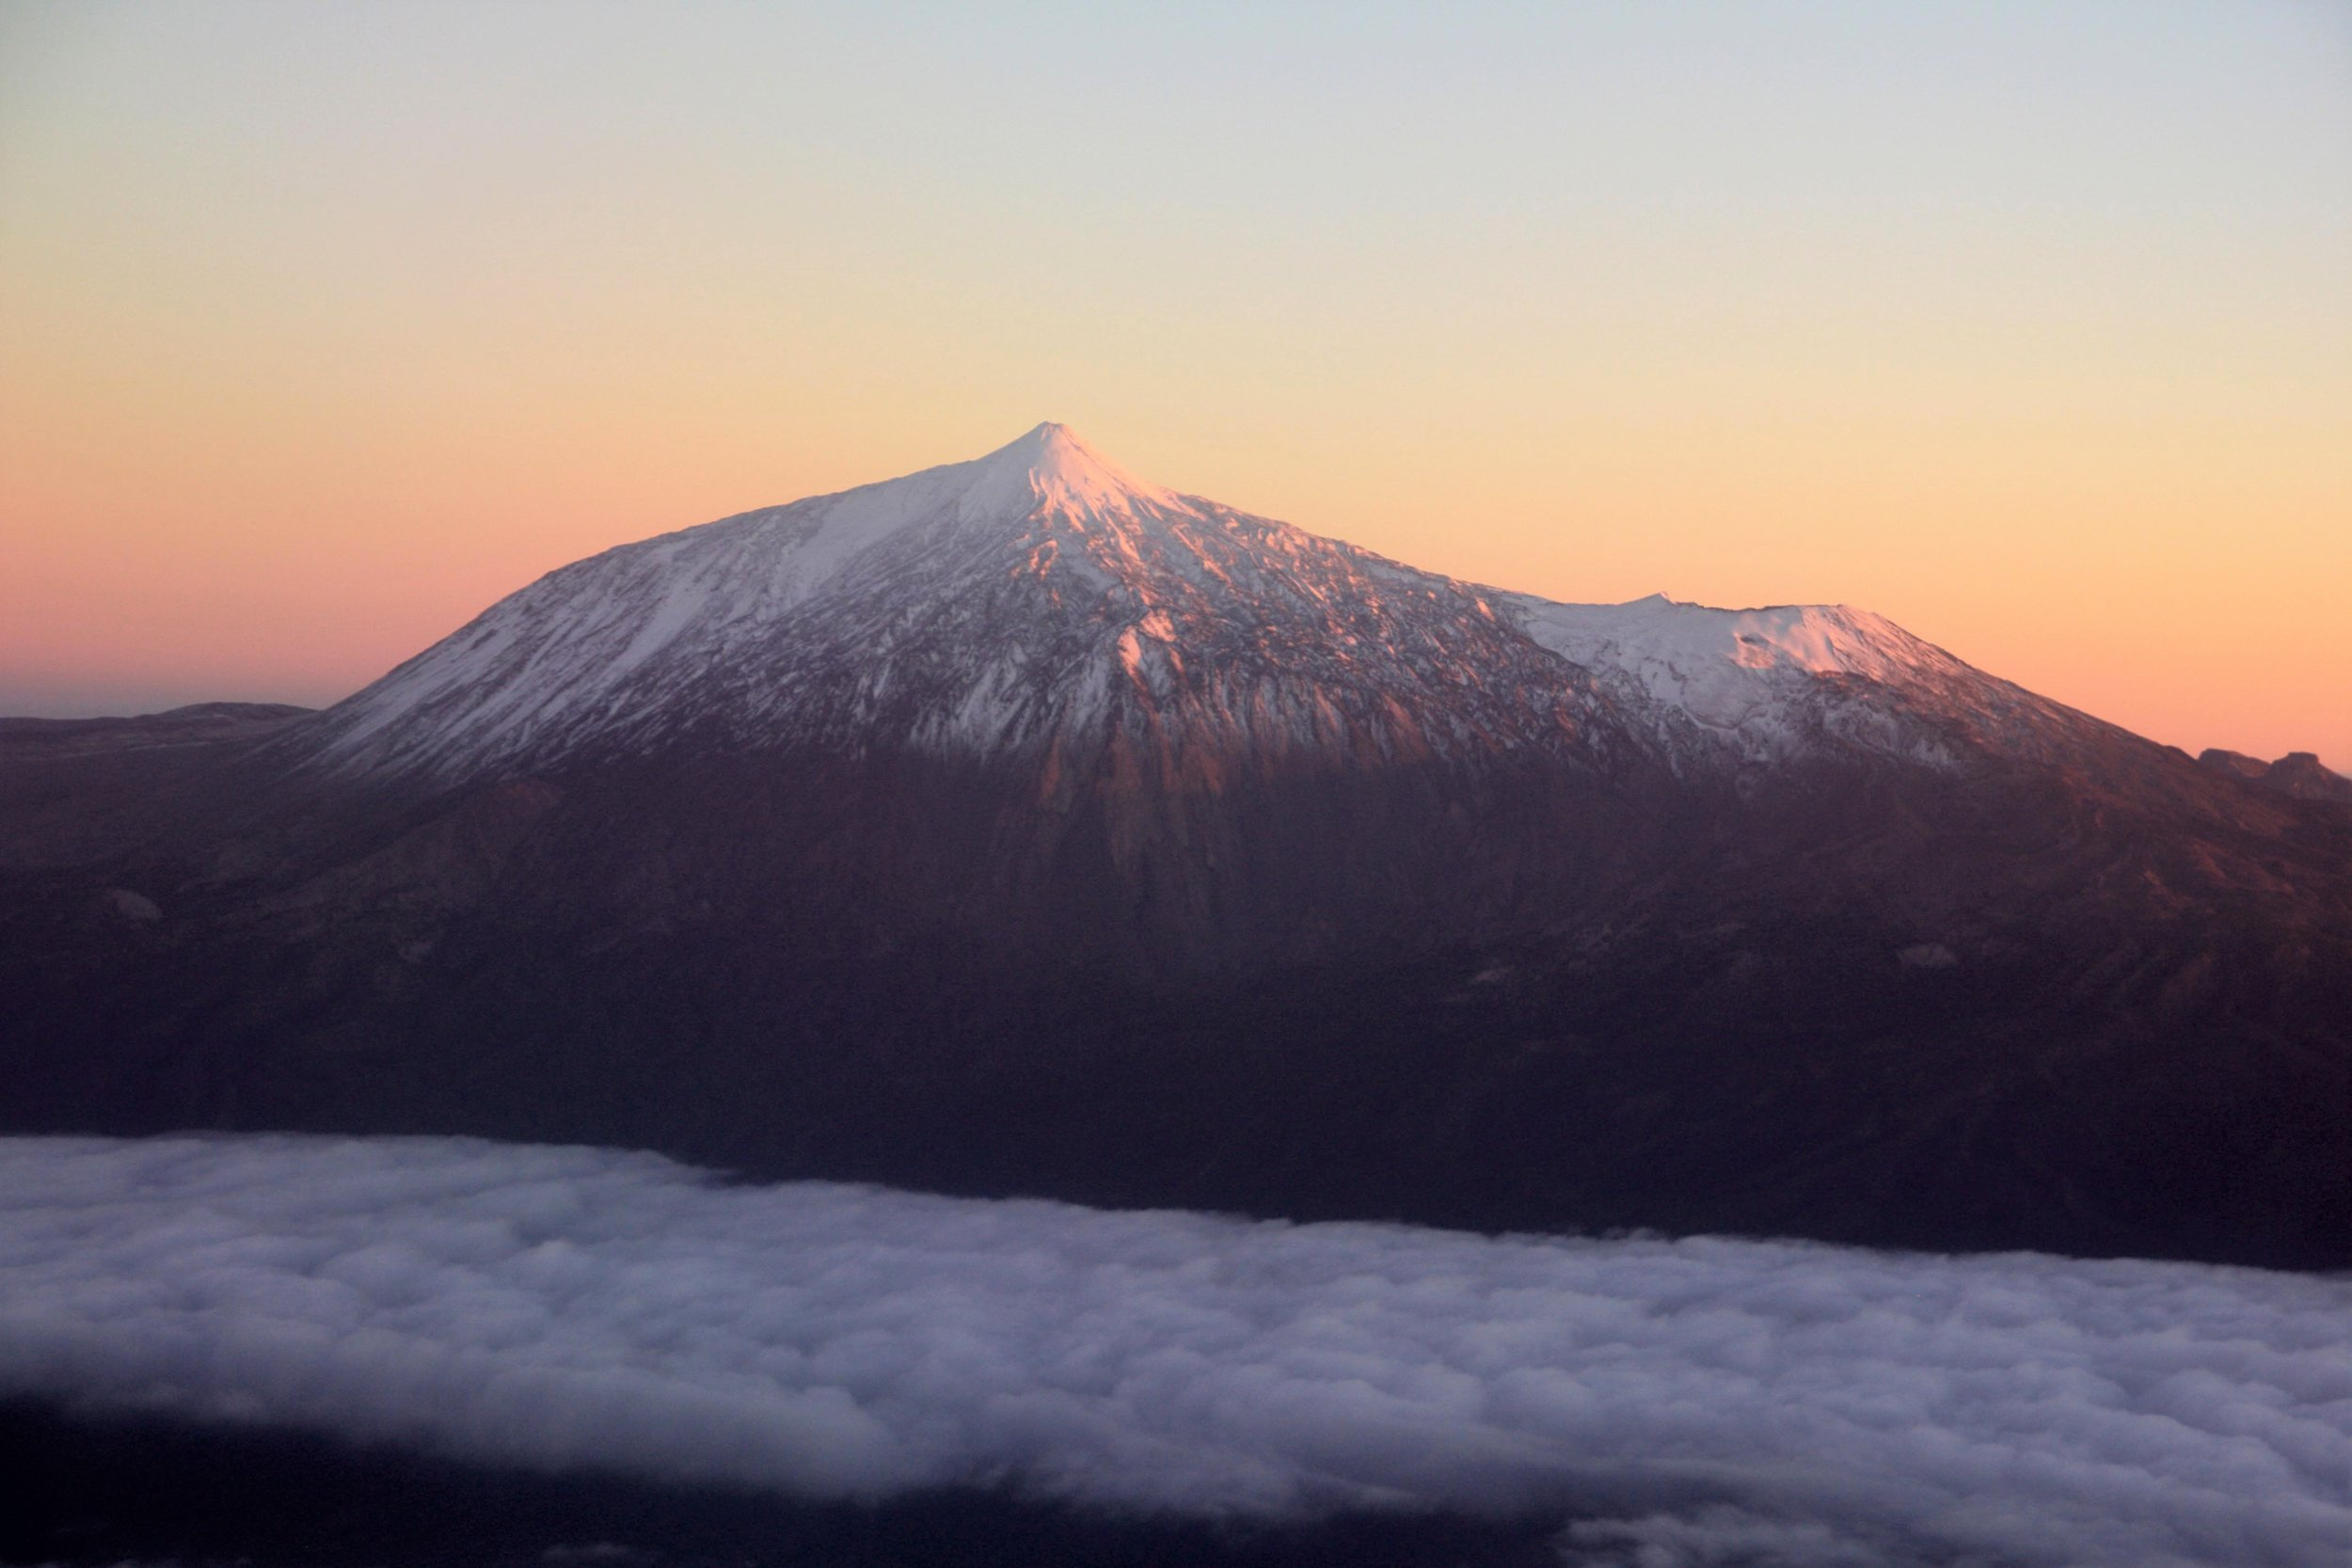 Pico del Teide from the plane at sunset. (My visit to the top came before the snow.)